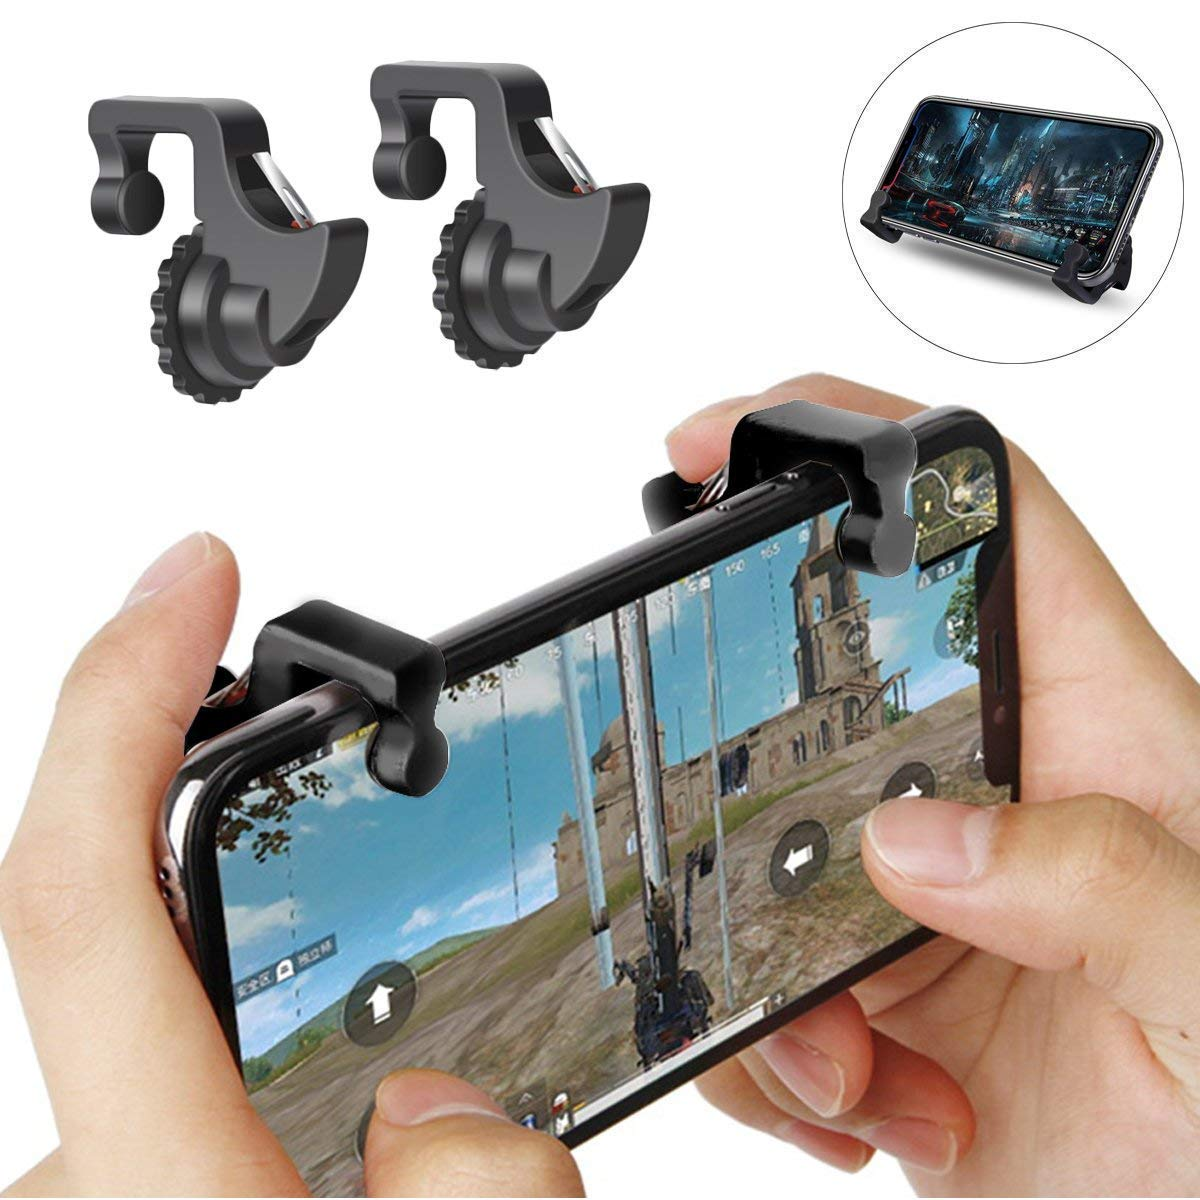 Freckle PUBG Mobile Game Controller, Gaming Trigger Fire Button Aim Key With Fast Charging USB Data Cable V8 Micro USB Cable.